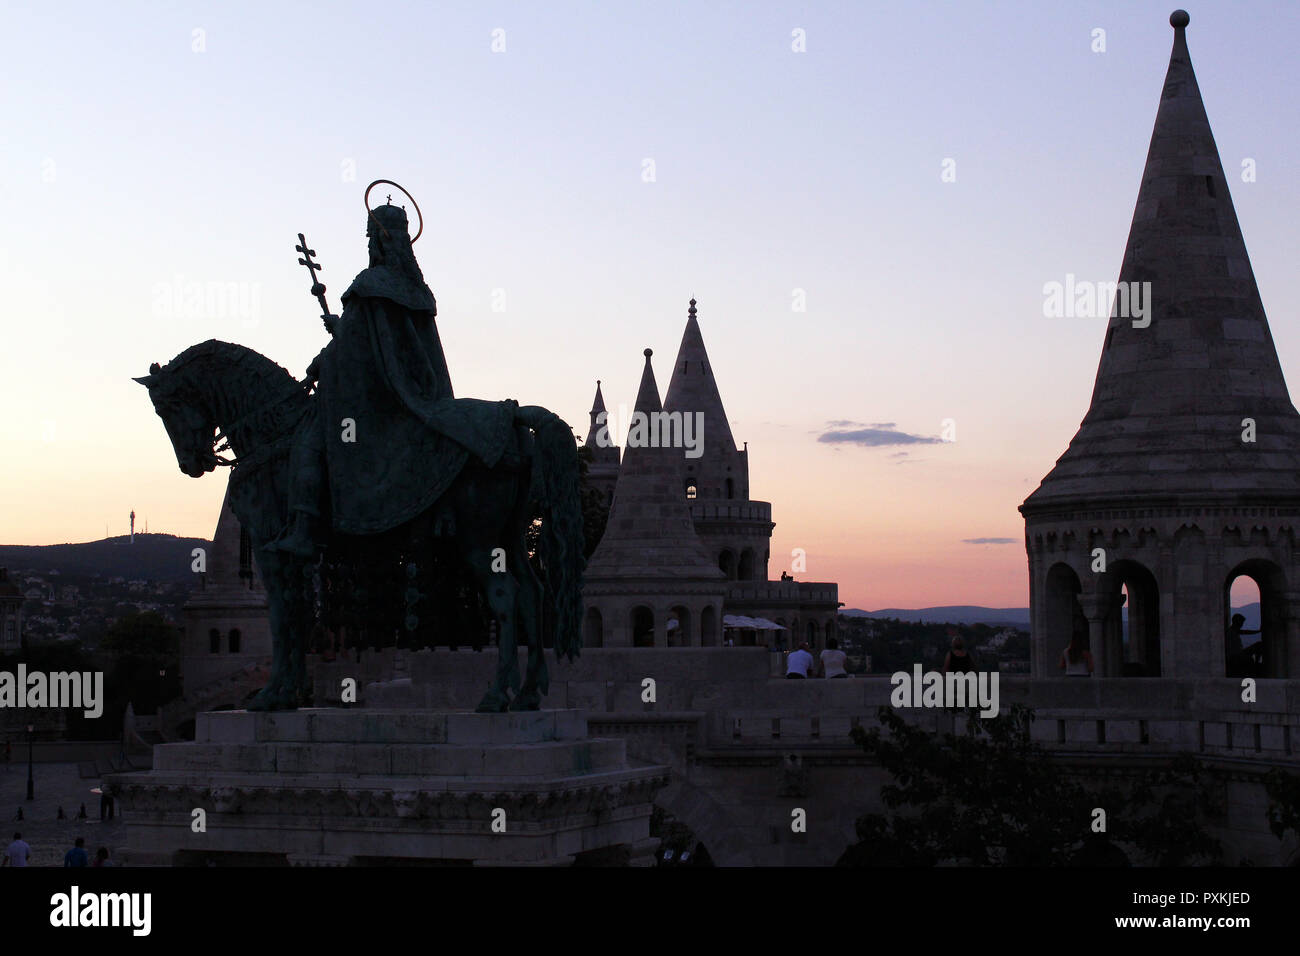 Silhouette of statue of Saint Stephen riding a horse in the sunset Stock Photo